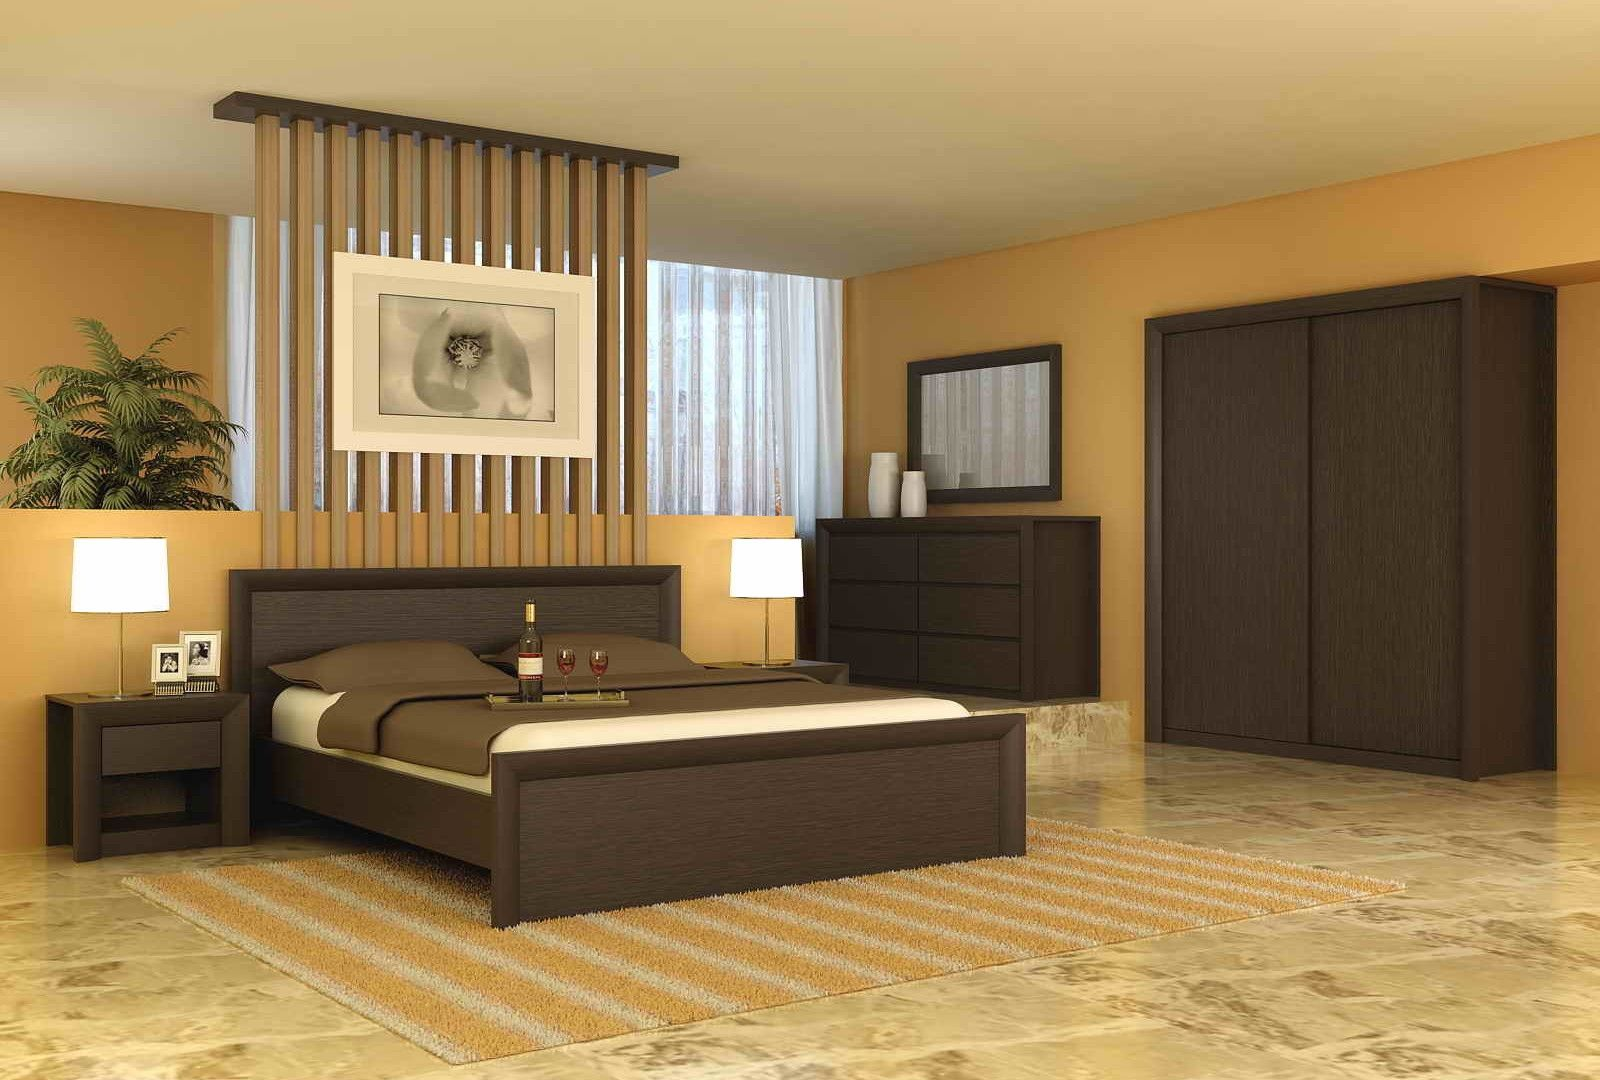 Bedroom wall ideas modern - Simple Bedroom Wall Wardrobe Design Simple Modern Bedroom Decorating Ideas With Calm Wall Color Shades And